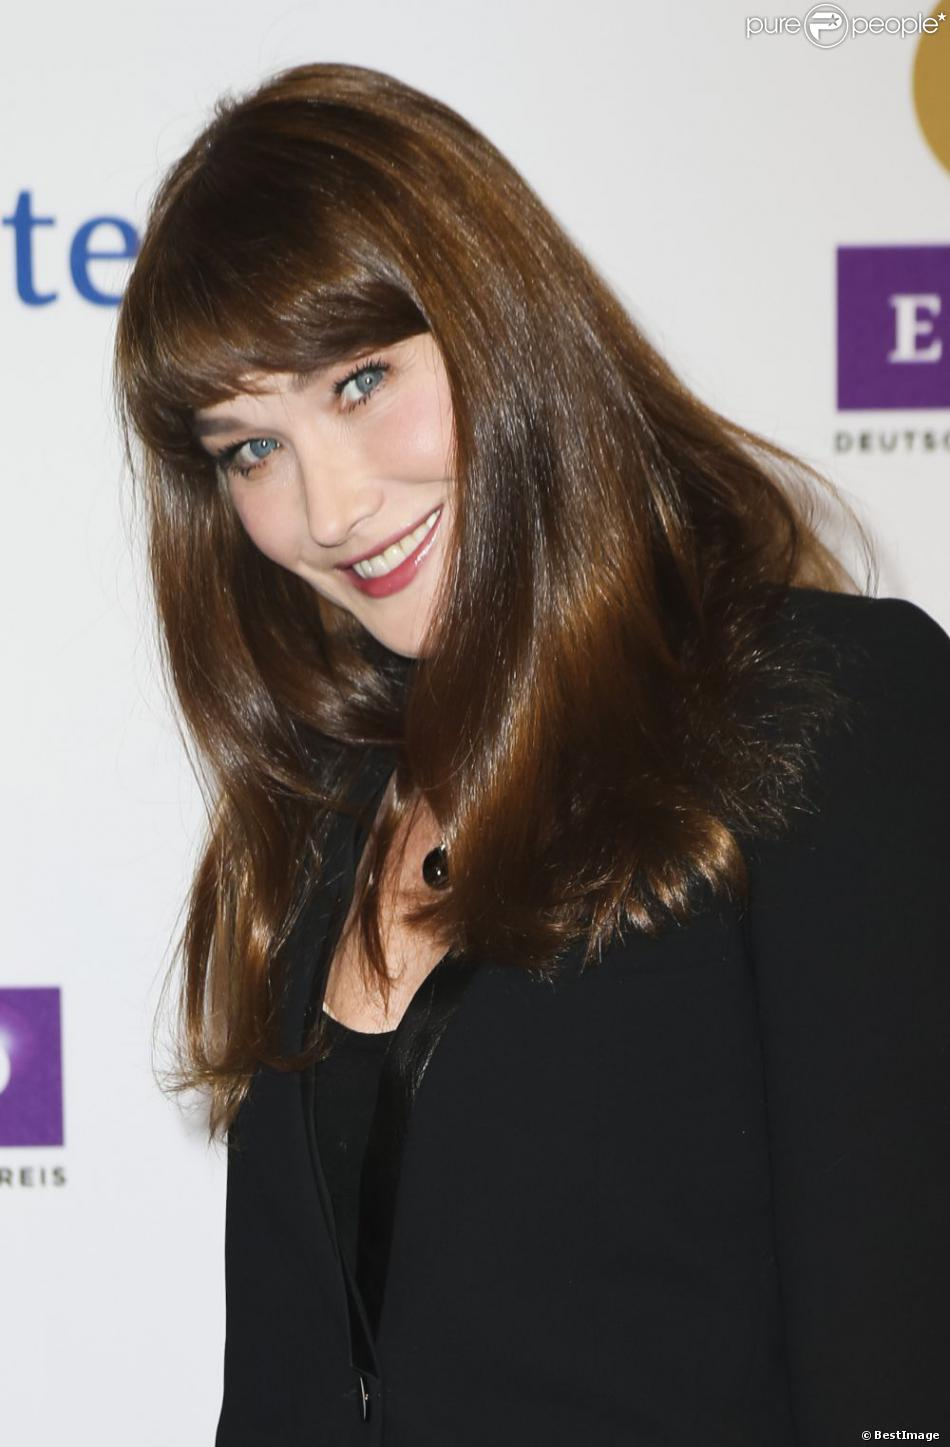 Carla Bruni sur le tapis rouge des Echo Music Awards à Berlin, le 21 mars 2013.